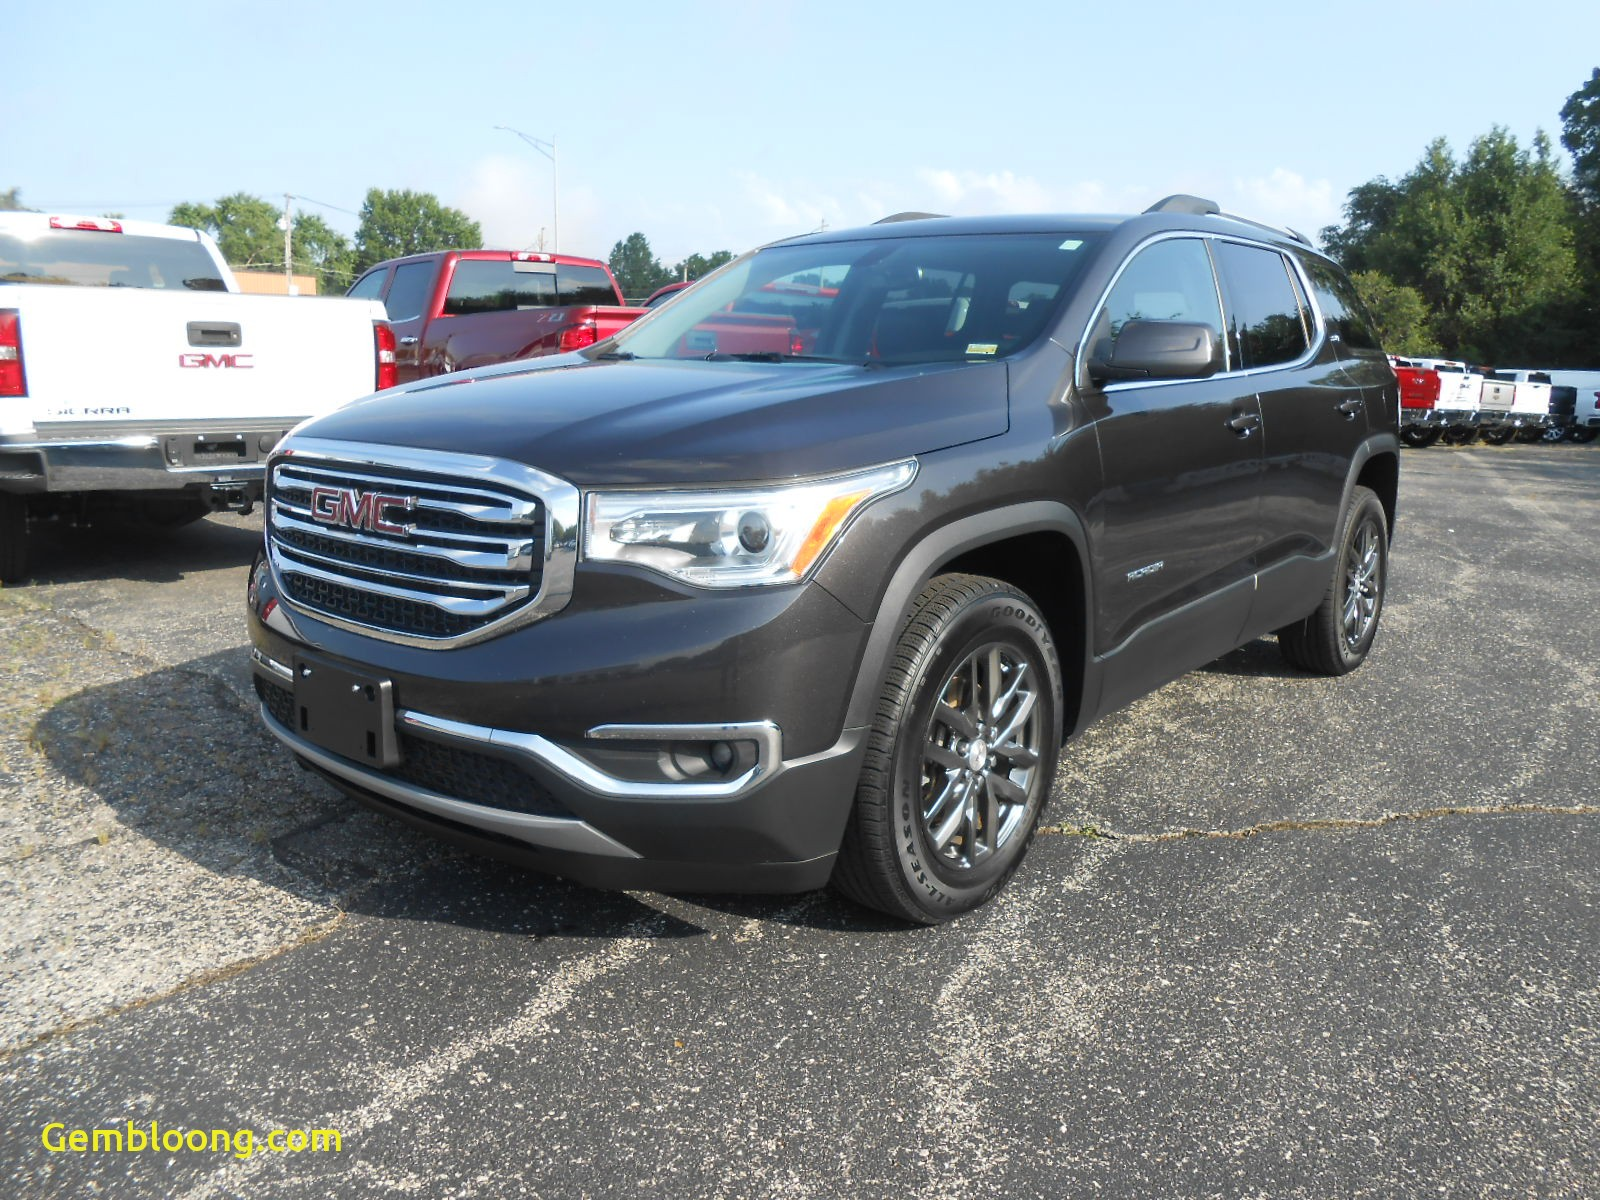 Cars and Trucks for Sale Near Me by Owner Best Of West Plains Used Vehicles for Sale